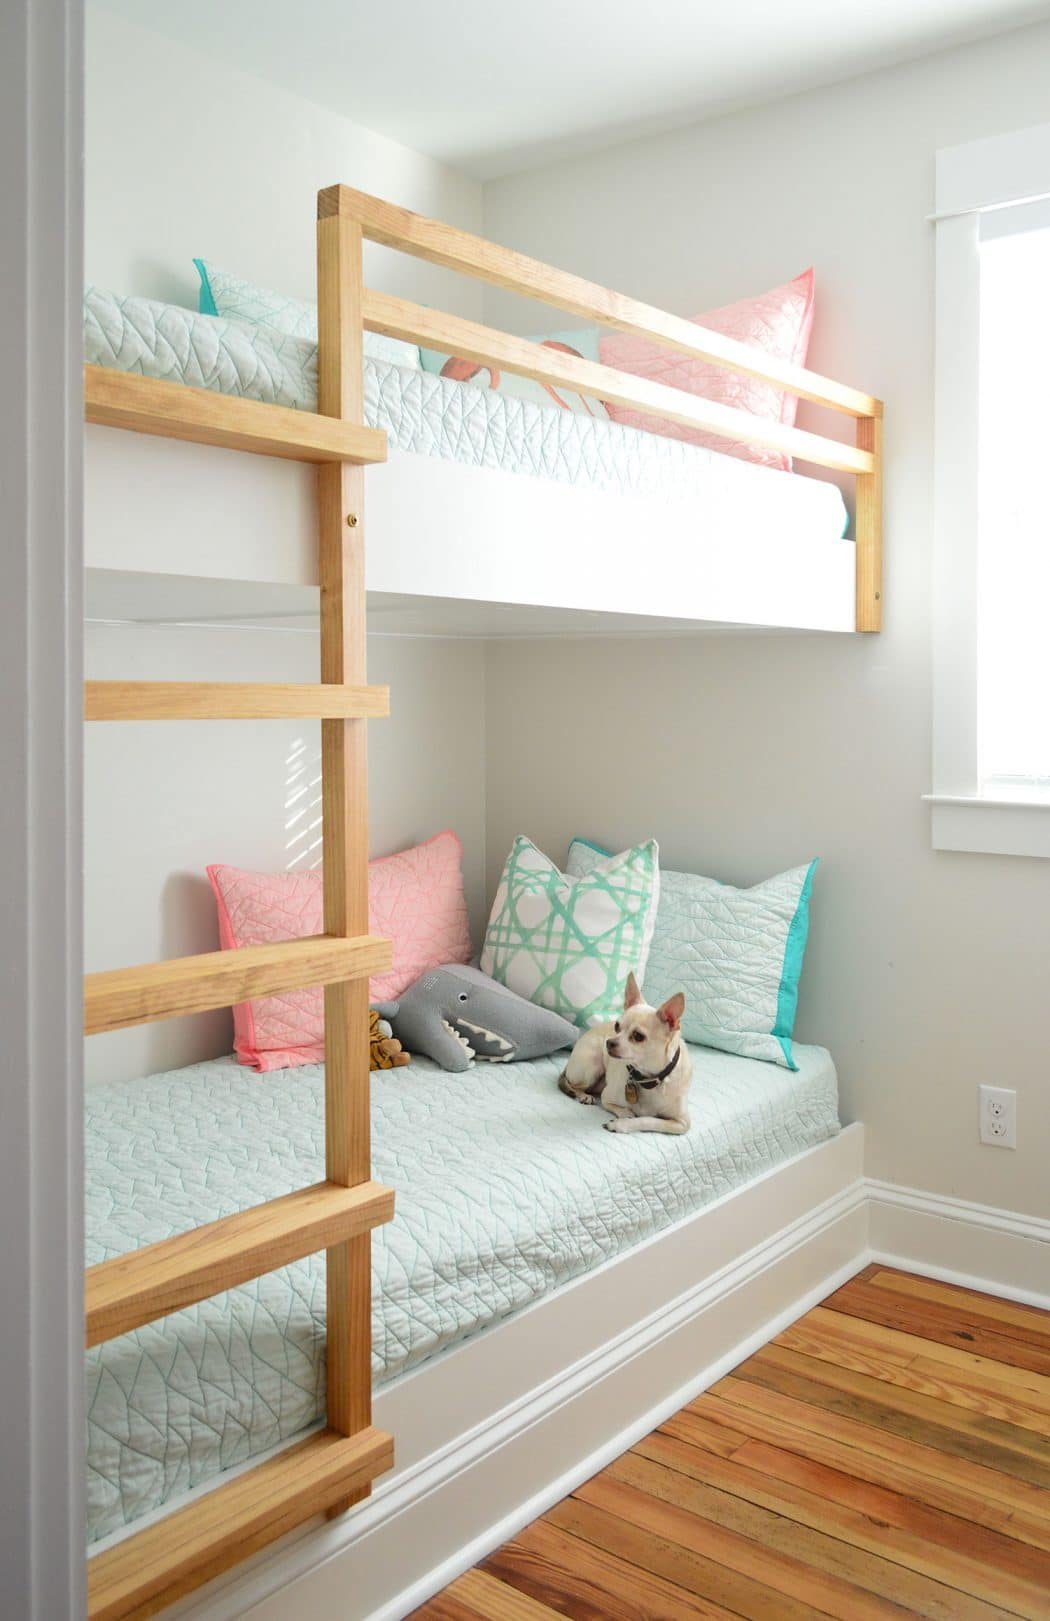 Advantages And Drawbacks Of Strong Wooden Loft Bed With Stairs How We Made Built-In Bunk Beds At The Beach House